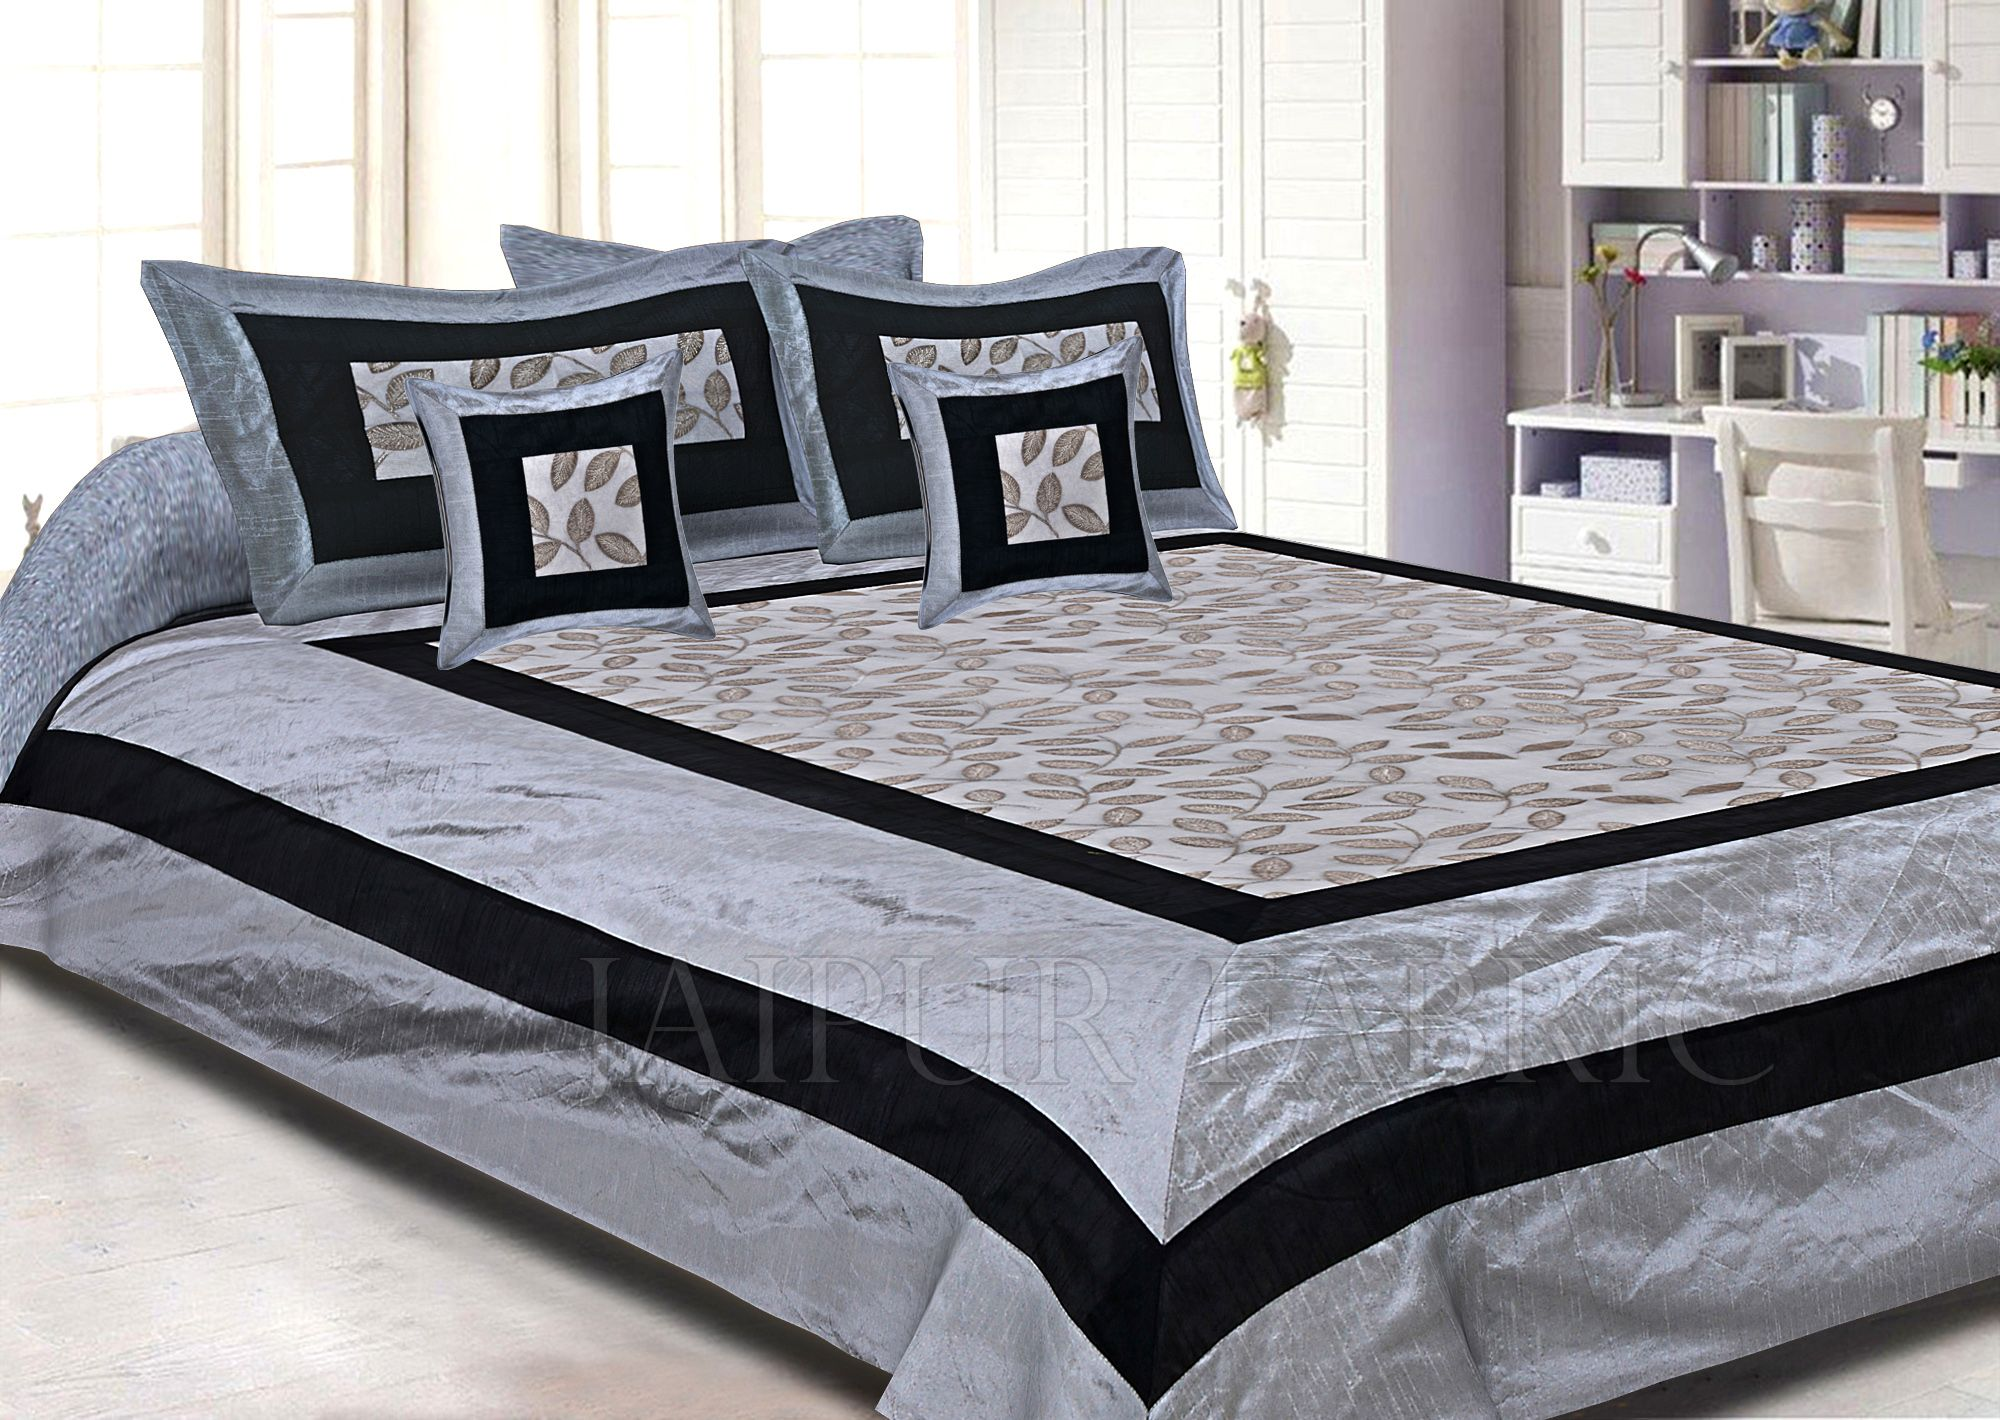 Light Grey Base And Black Border  Double Layered Silk And Tissue Shining Fabric With Computer Embroidery by Silvery Shining Thread Double Bedsheet